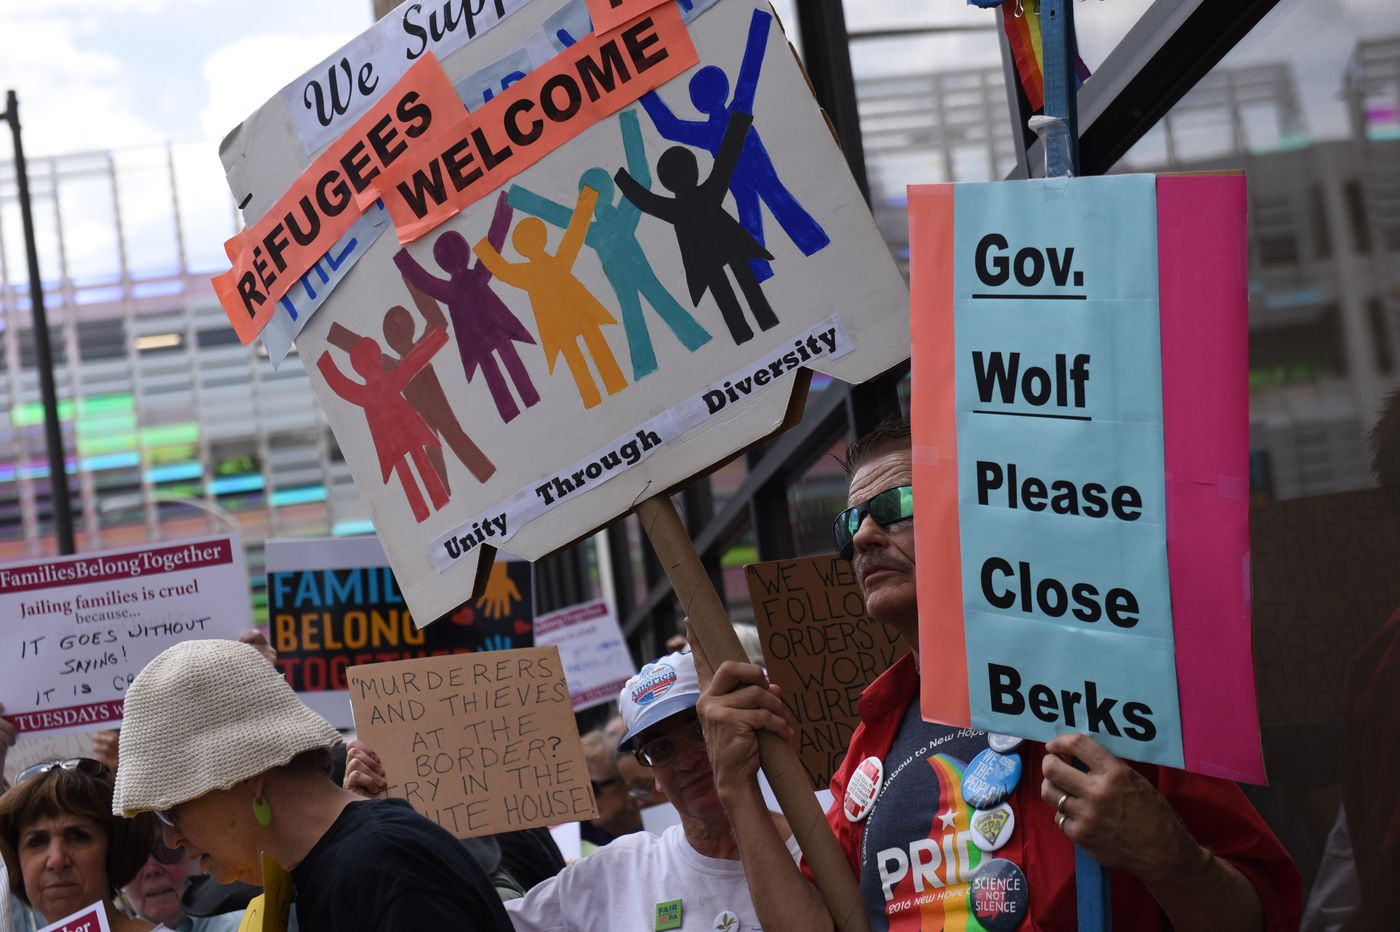 Gov. Wolf should keep pushing to close Berks immigrant detention center | Editorial